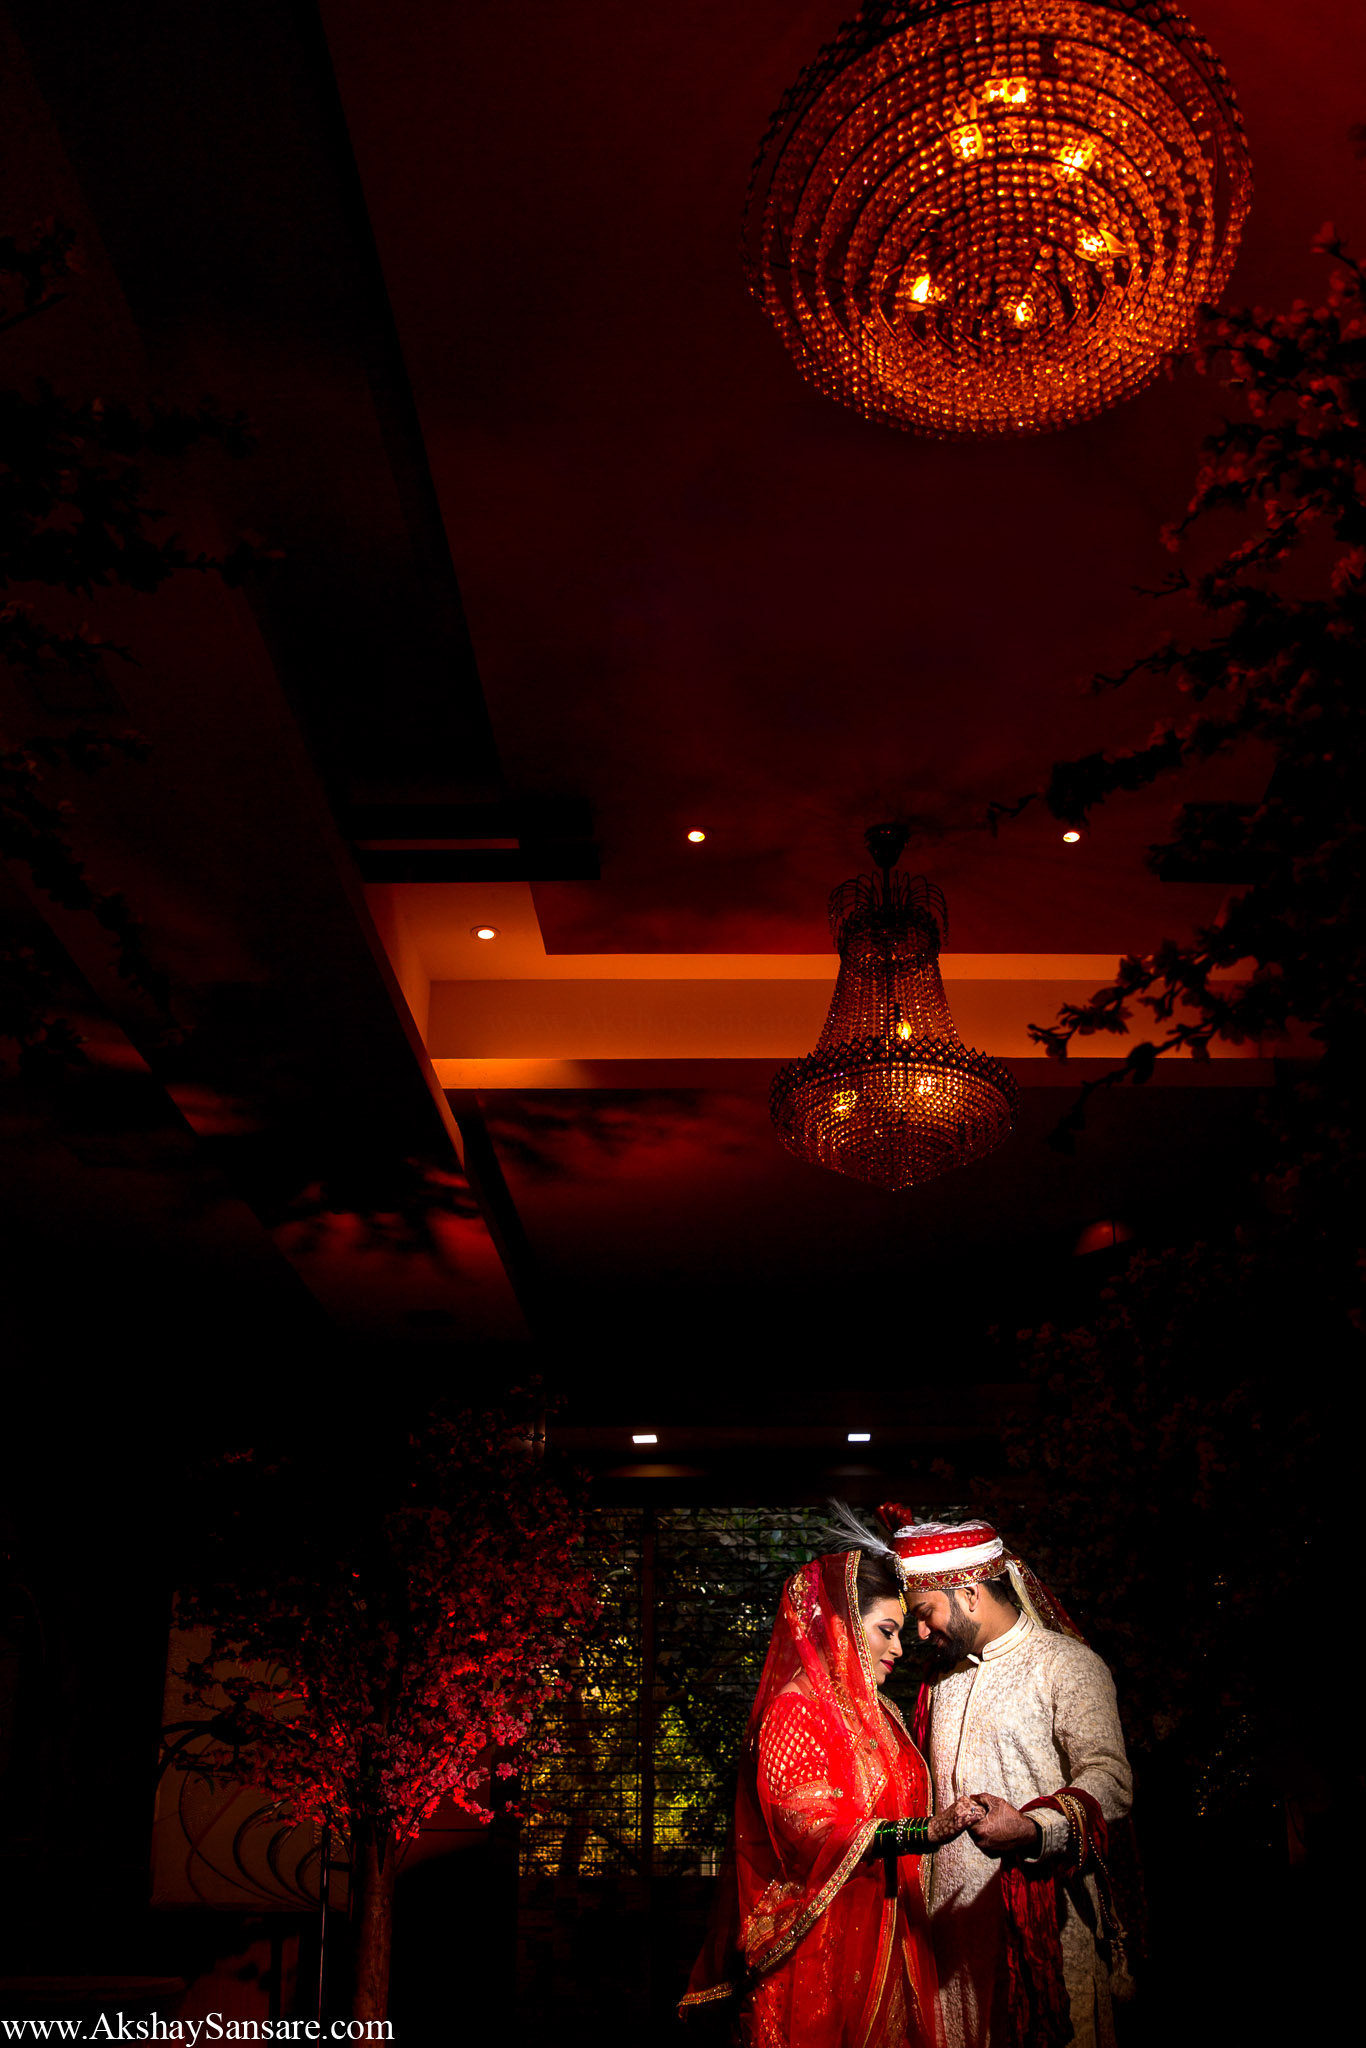 Ajay & Devika Akshay Sansare Photography Best Candid wedding photographer in mumbai india20.jpg